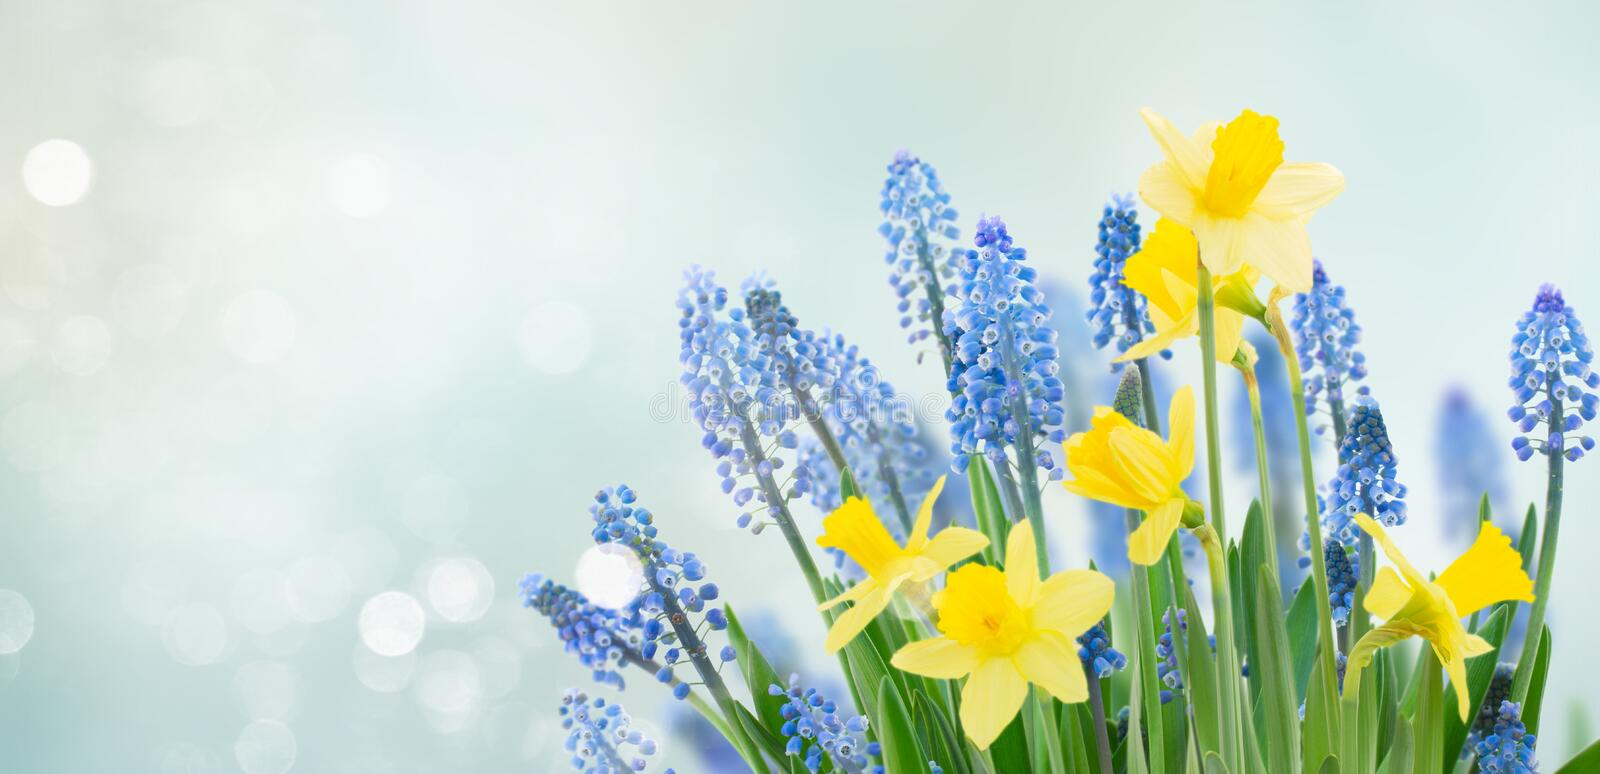 Spring bluebells and daffodils. Flowers under blue sky banner stock photo